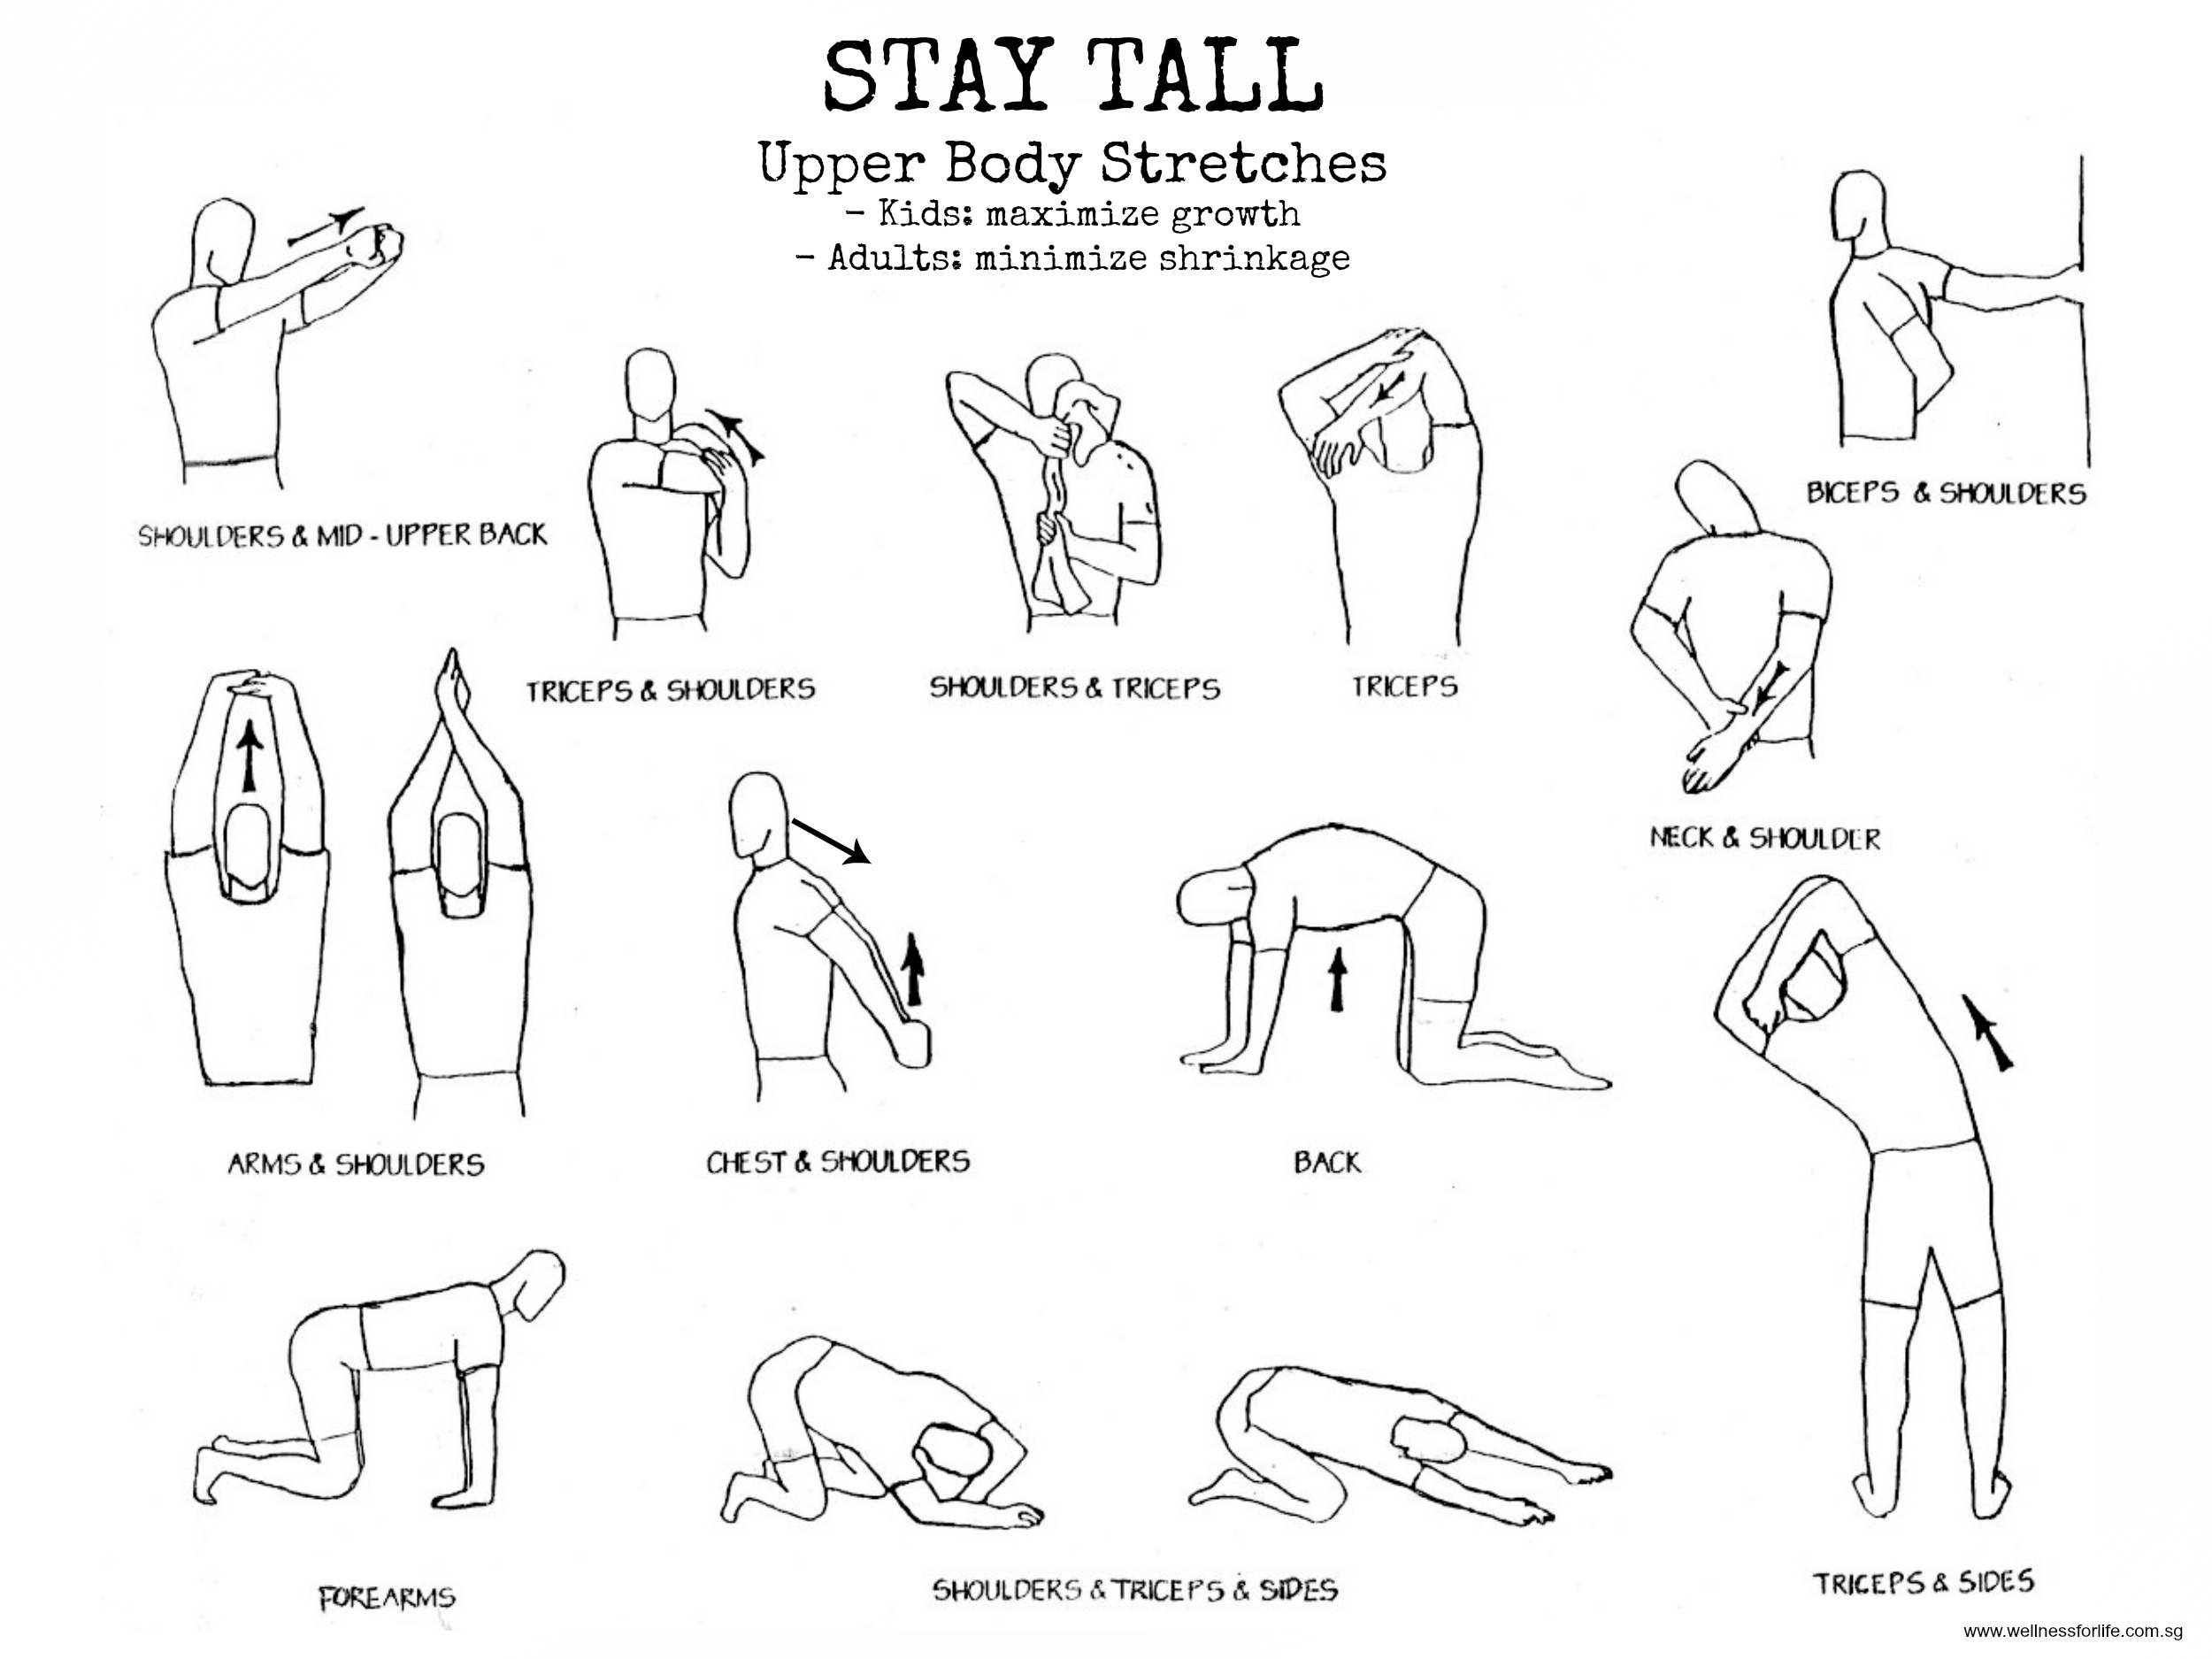 Wellness for Life Chiropractic | Stay Tall With Upper Body ...